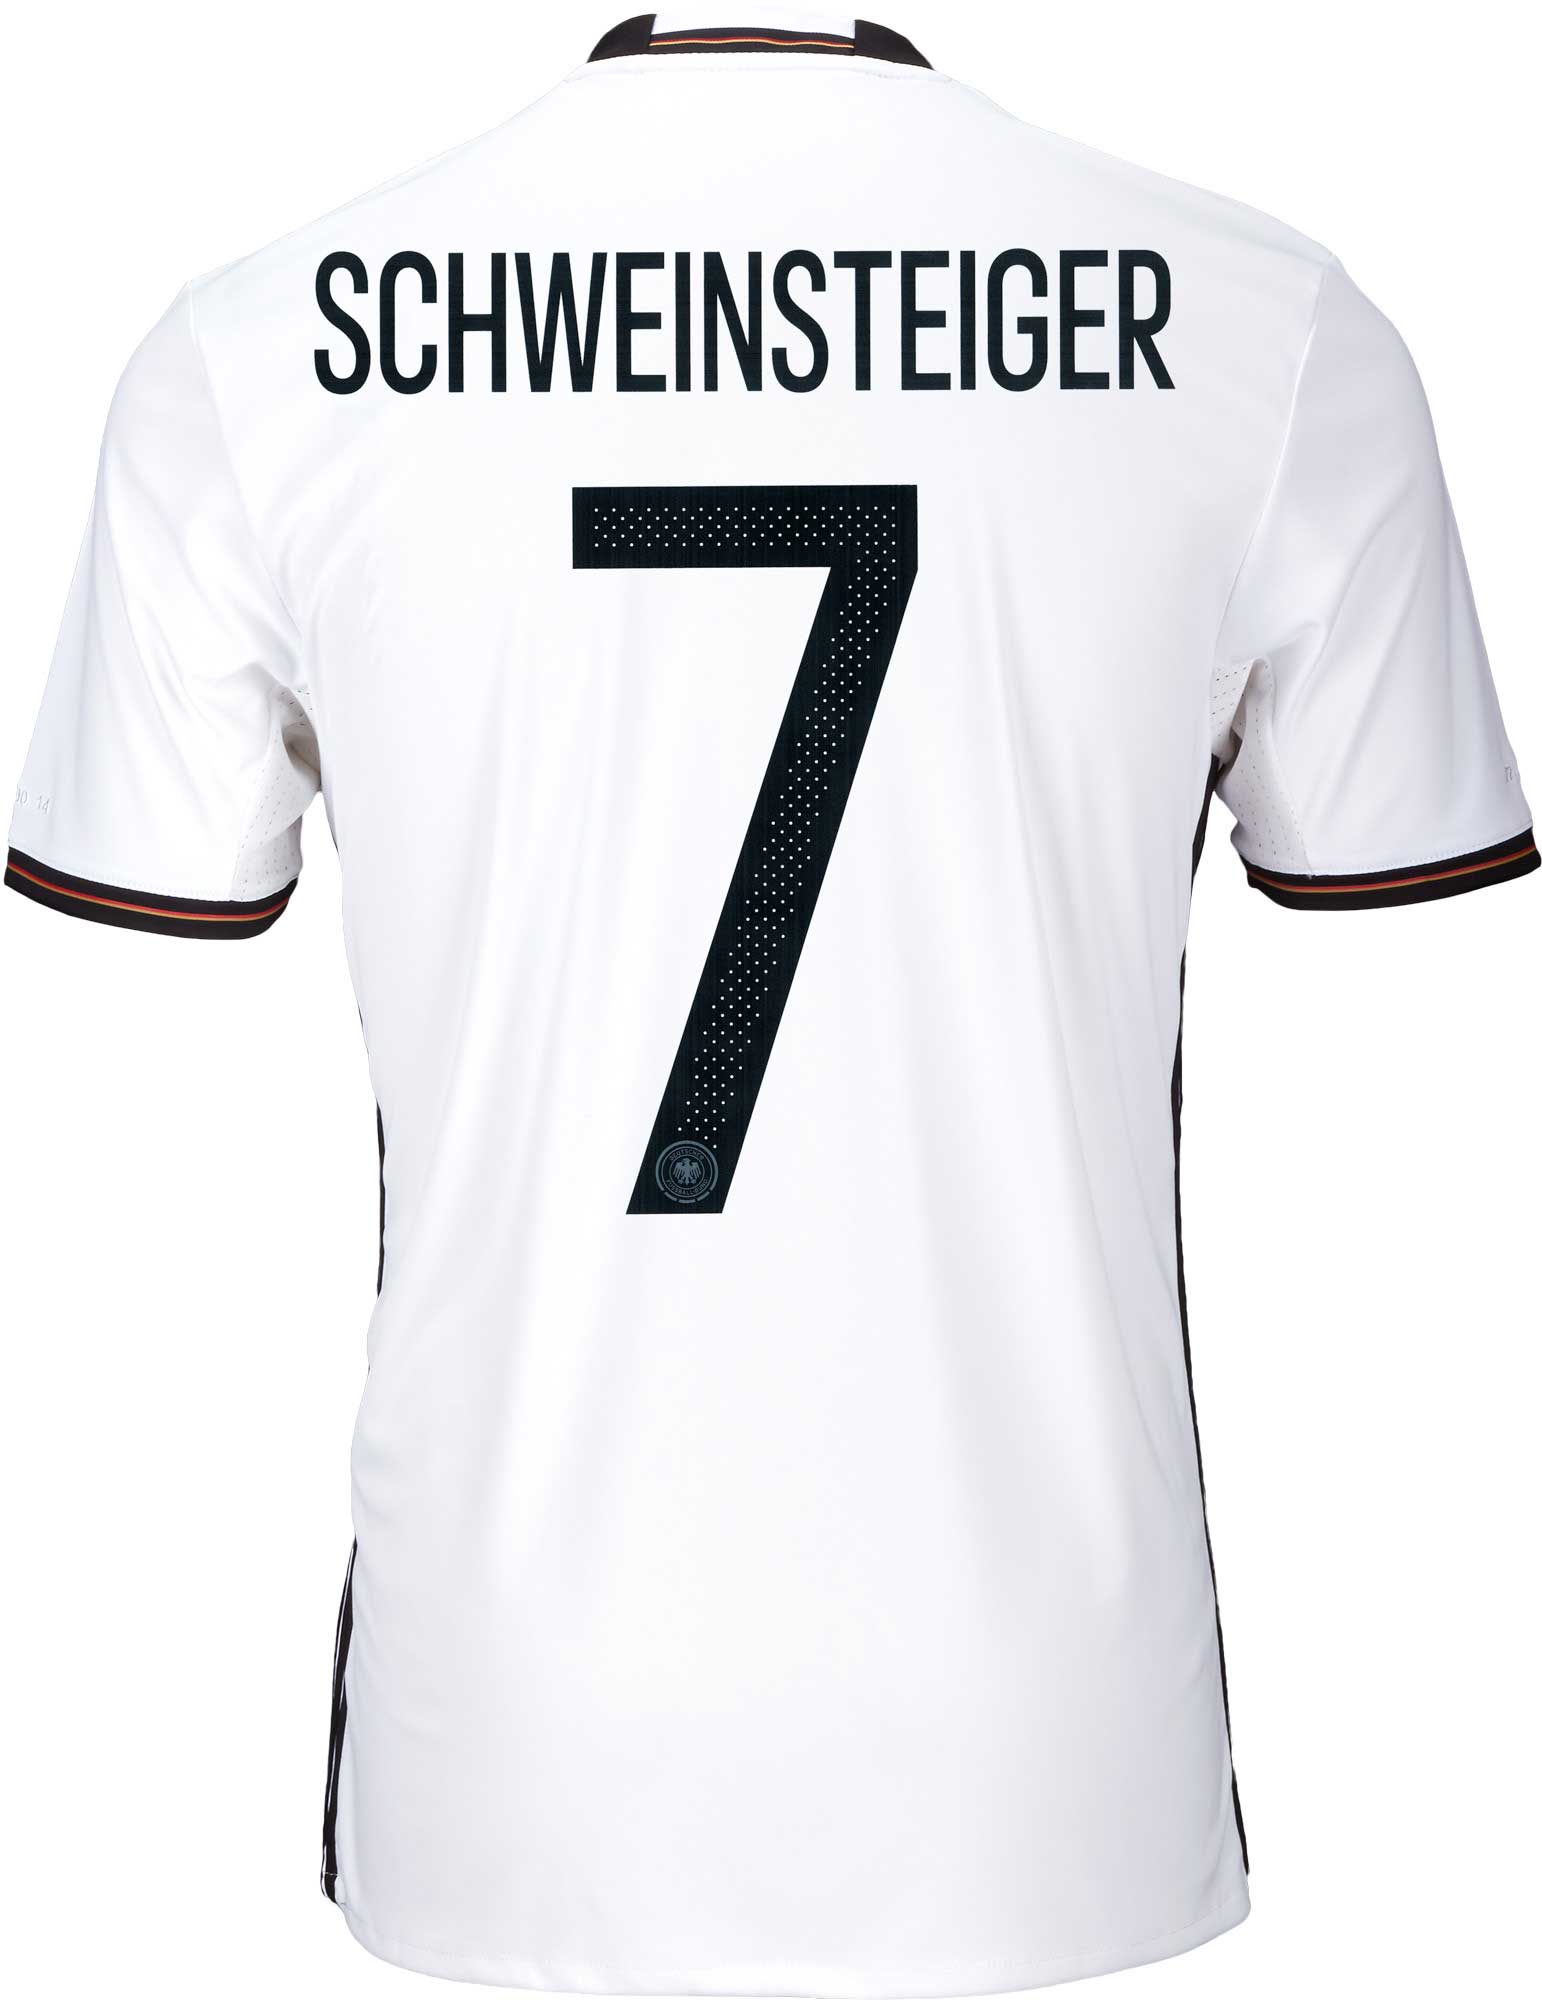 c5321f2a79f adidas Schweinsteiger Germany Home Jersey - 2016 Germany Jerseys